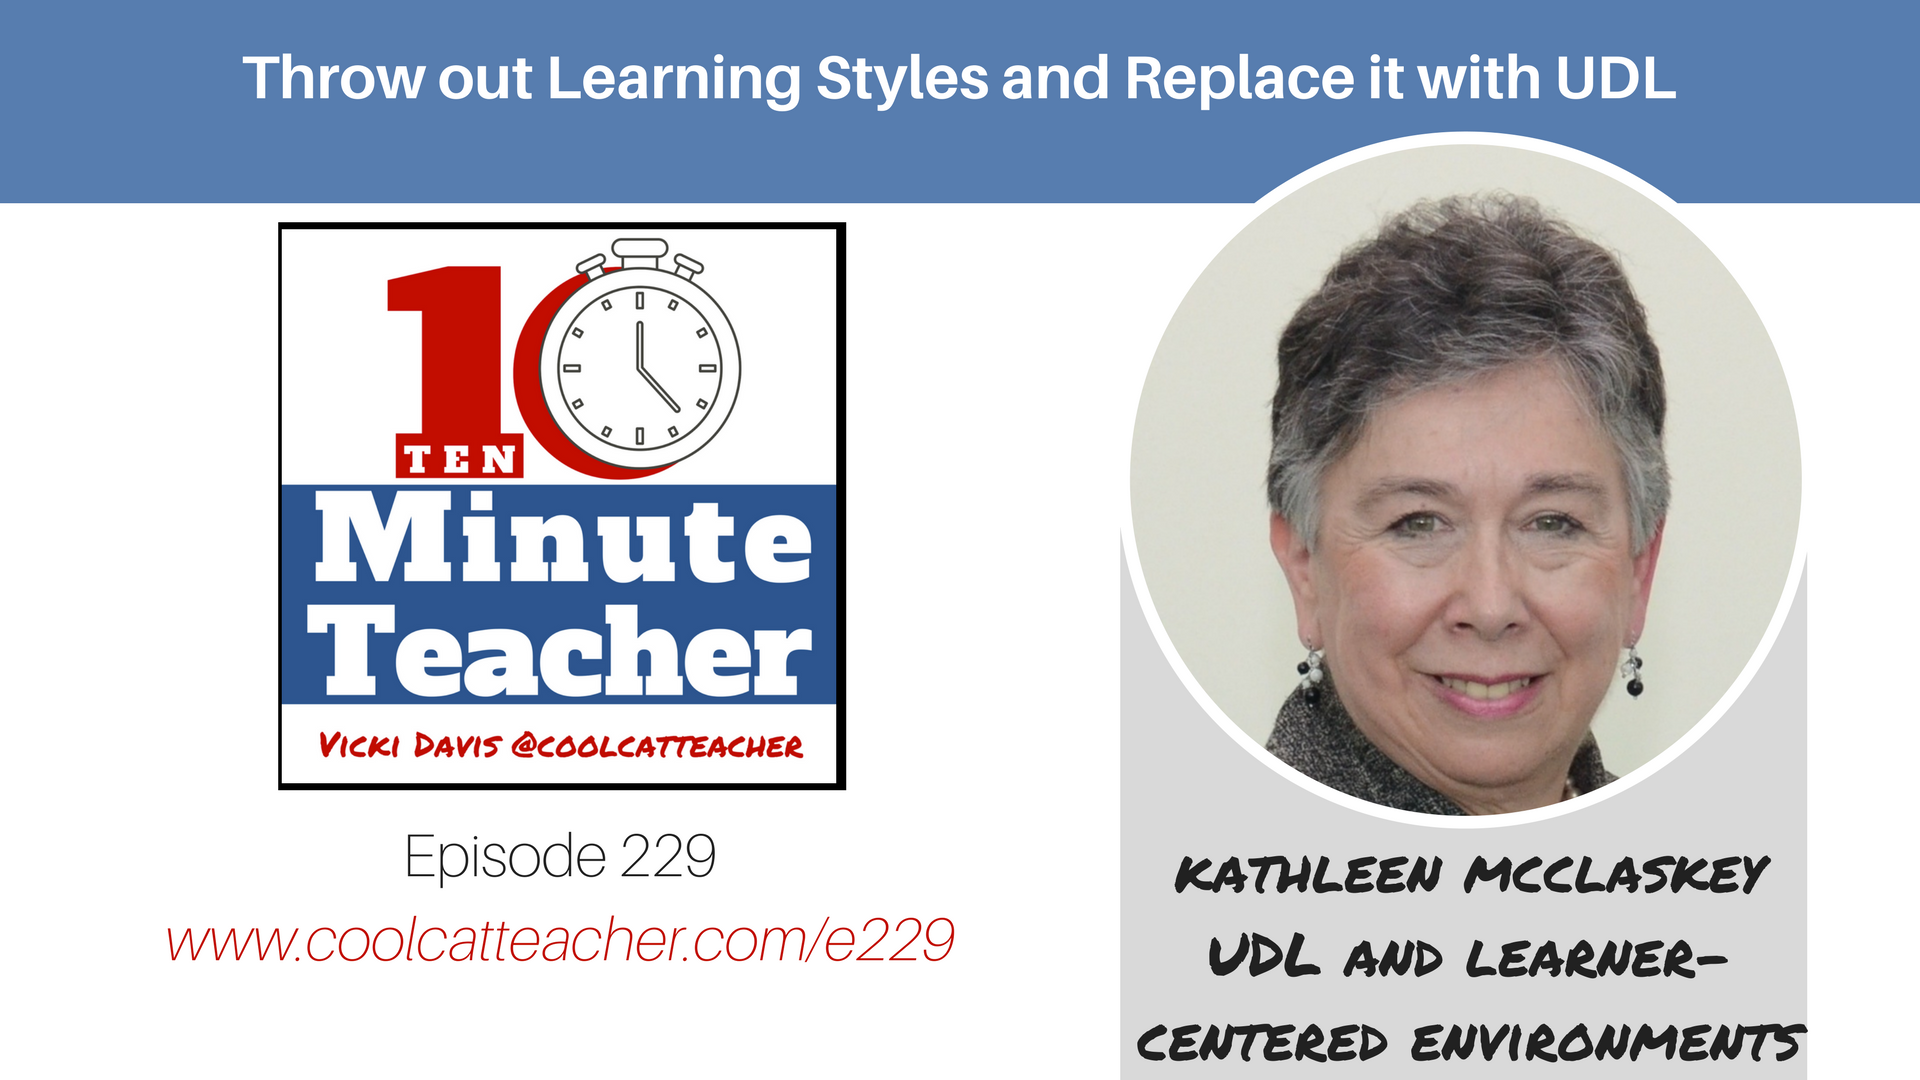 Throw Out Learning Styles and Replace it with UDL with Kathleen McClaskey